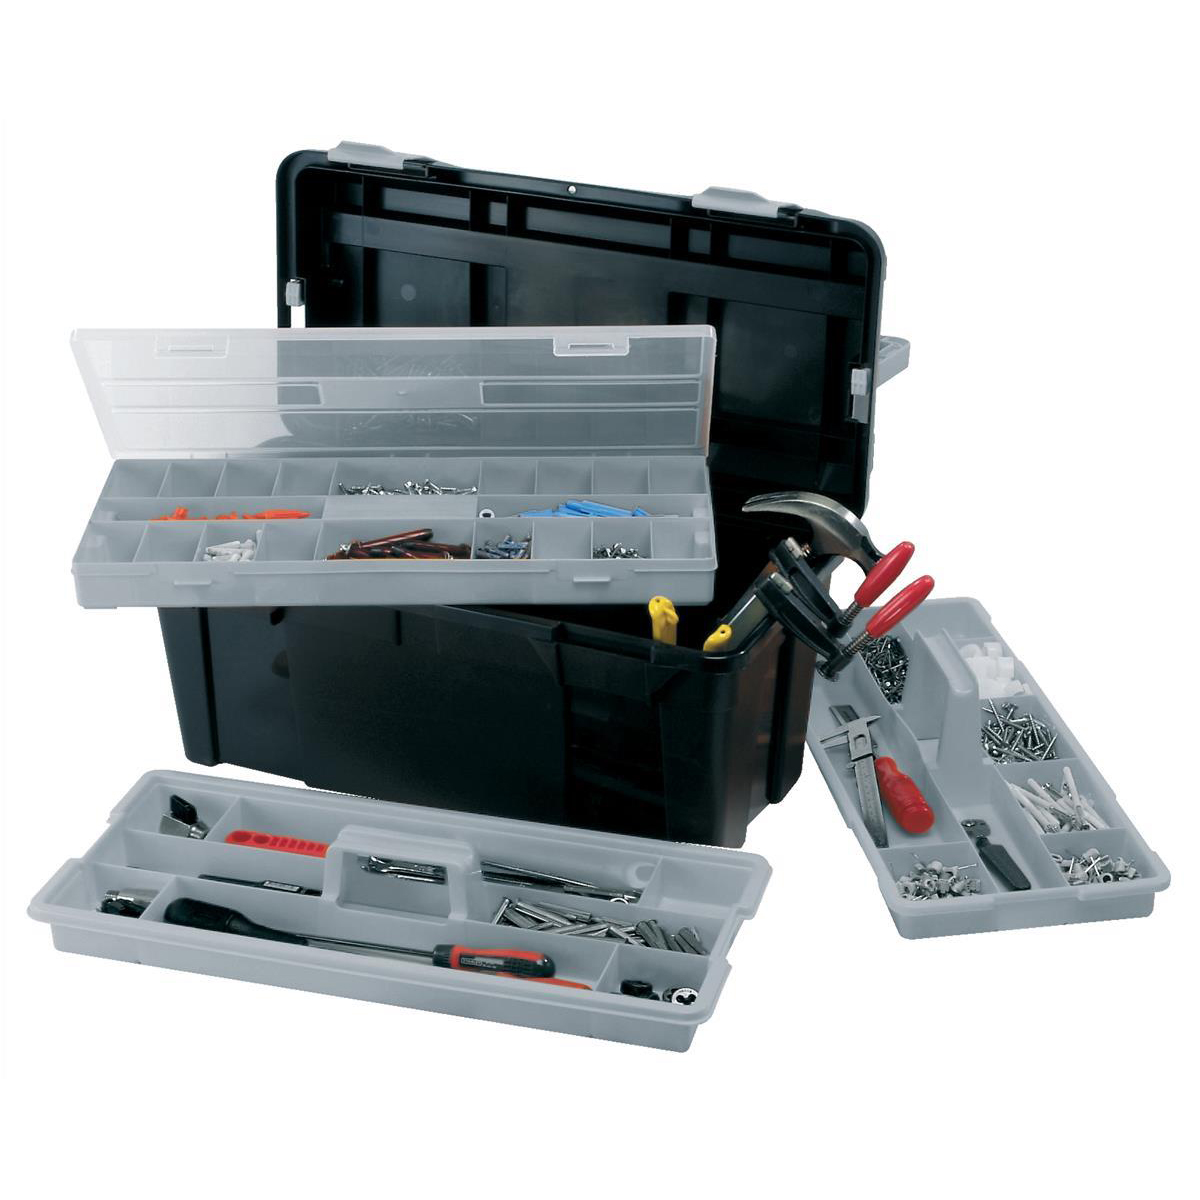 Raaco Toolbox 23 Inch with Two Removable Trays Black Ref 715195